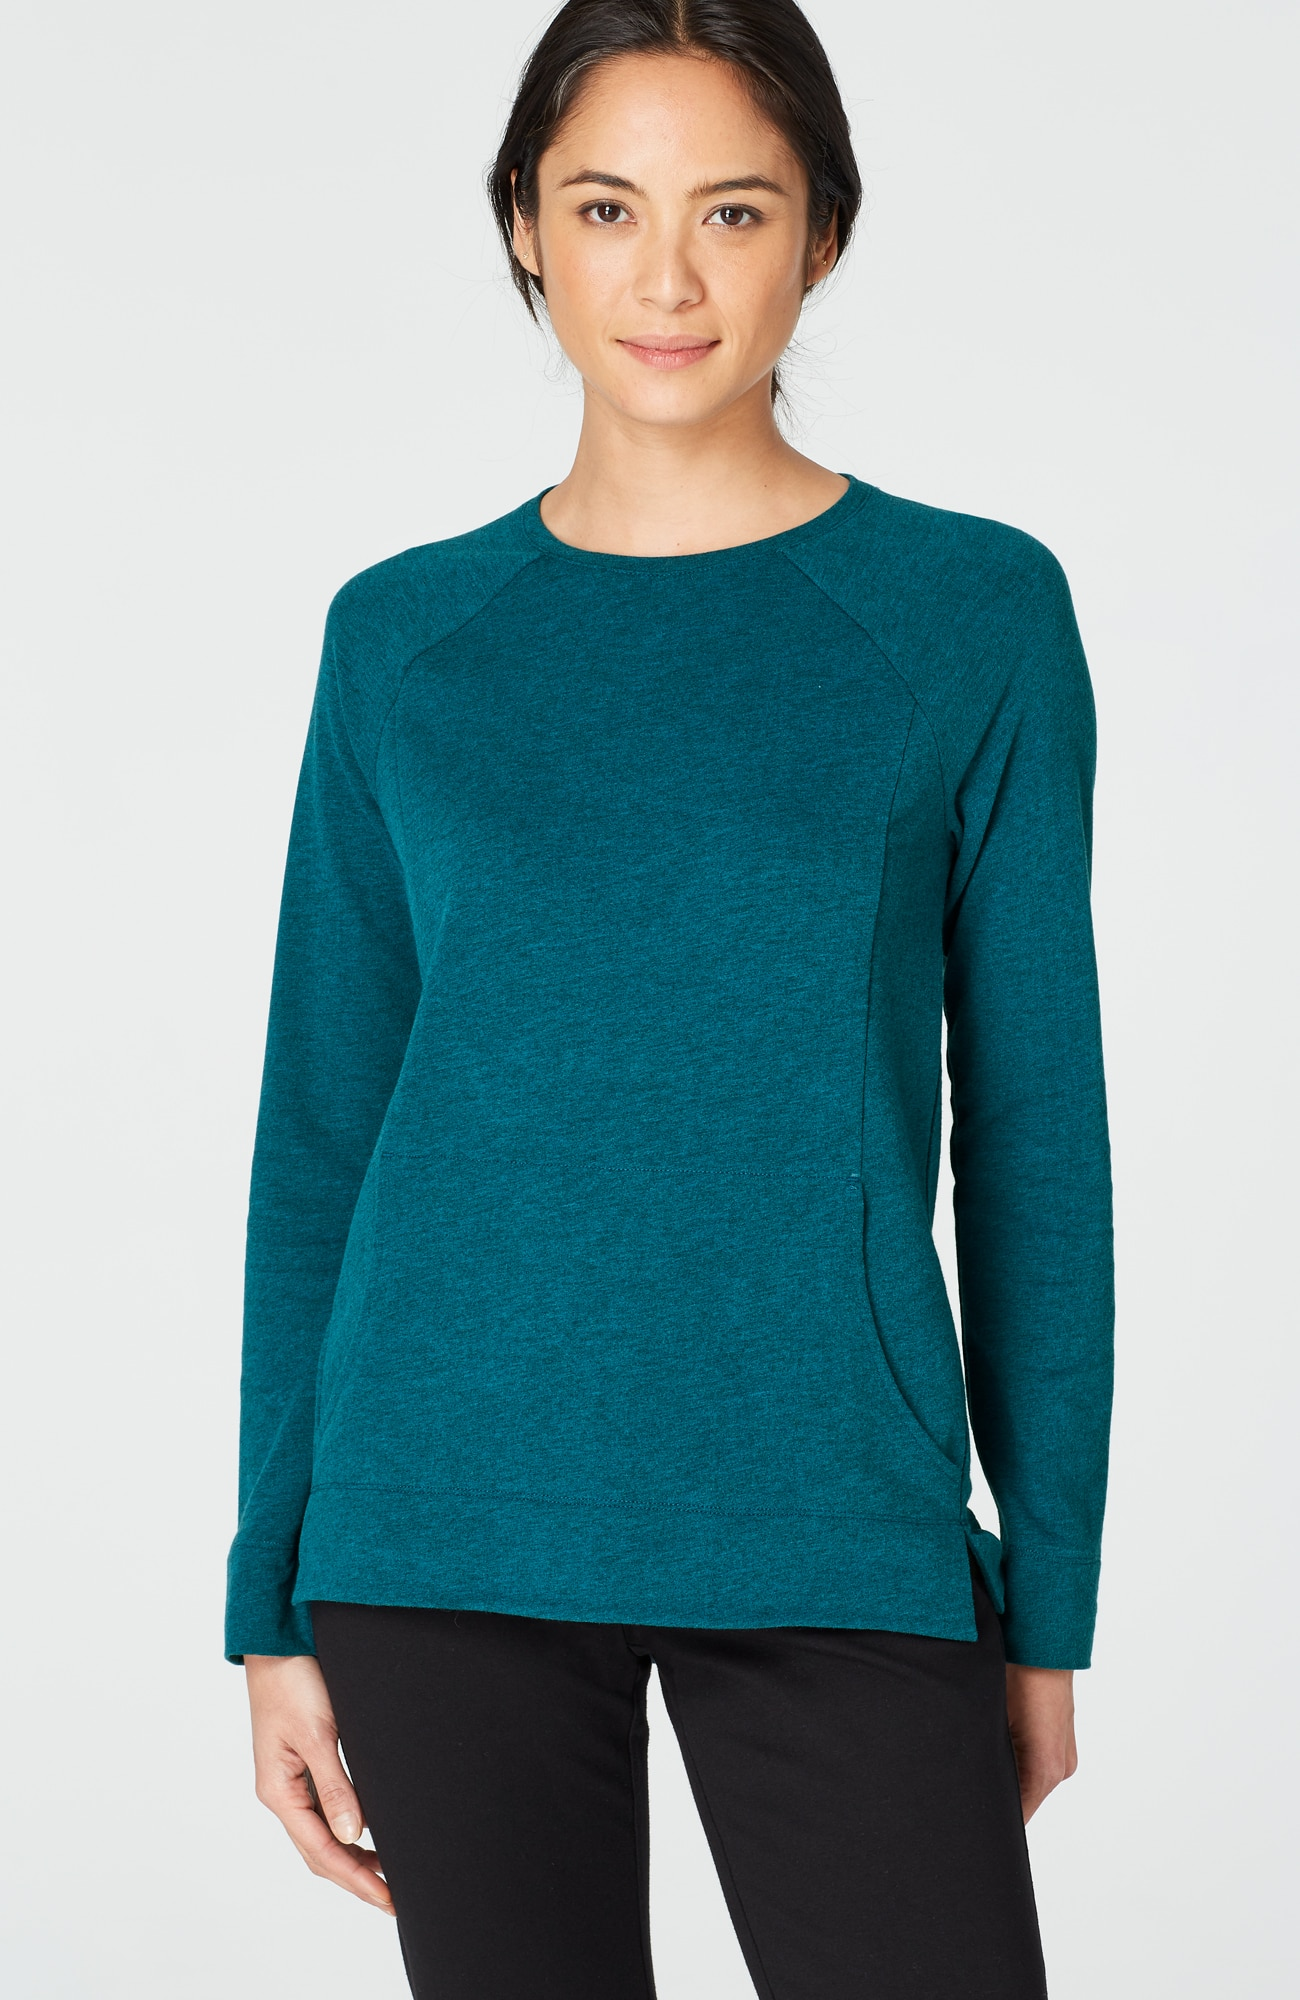 Pure Jill relaxed knit top